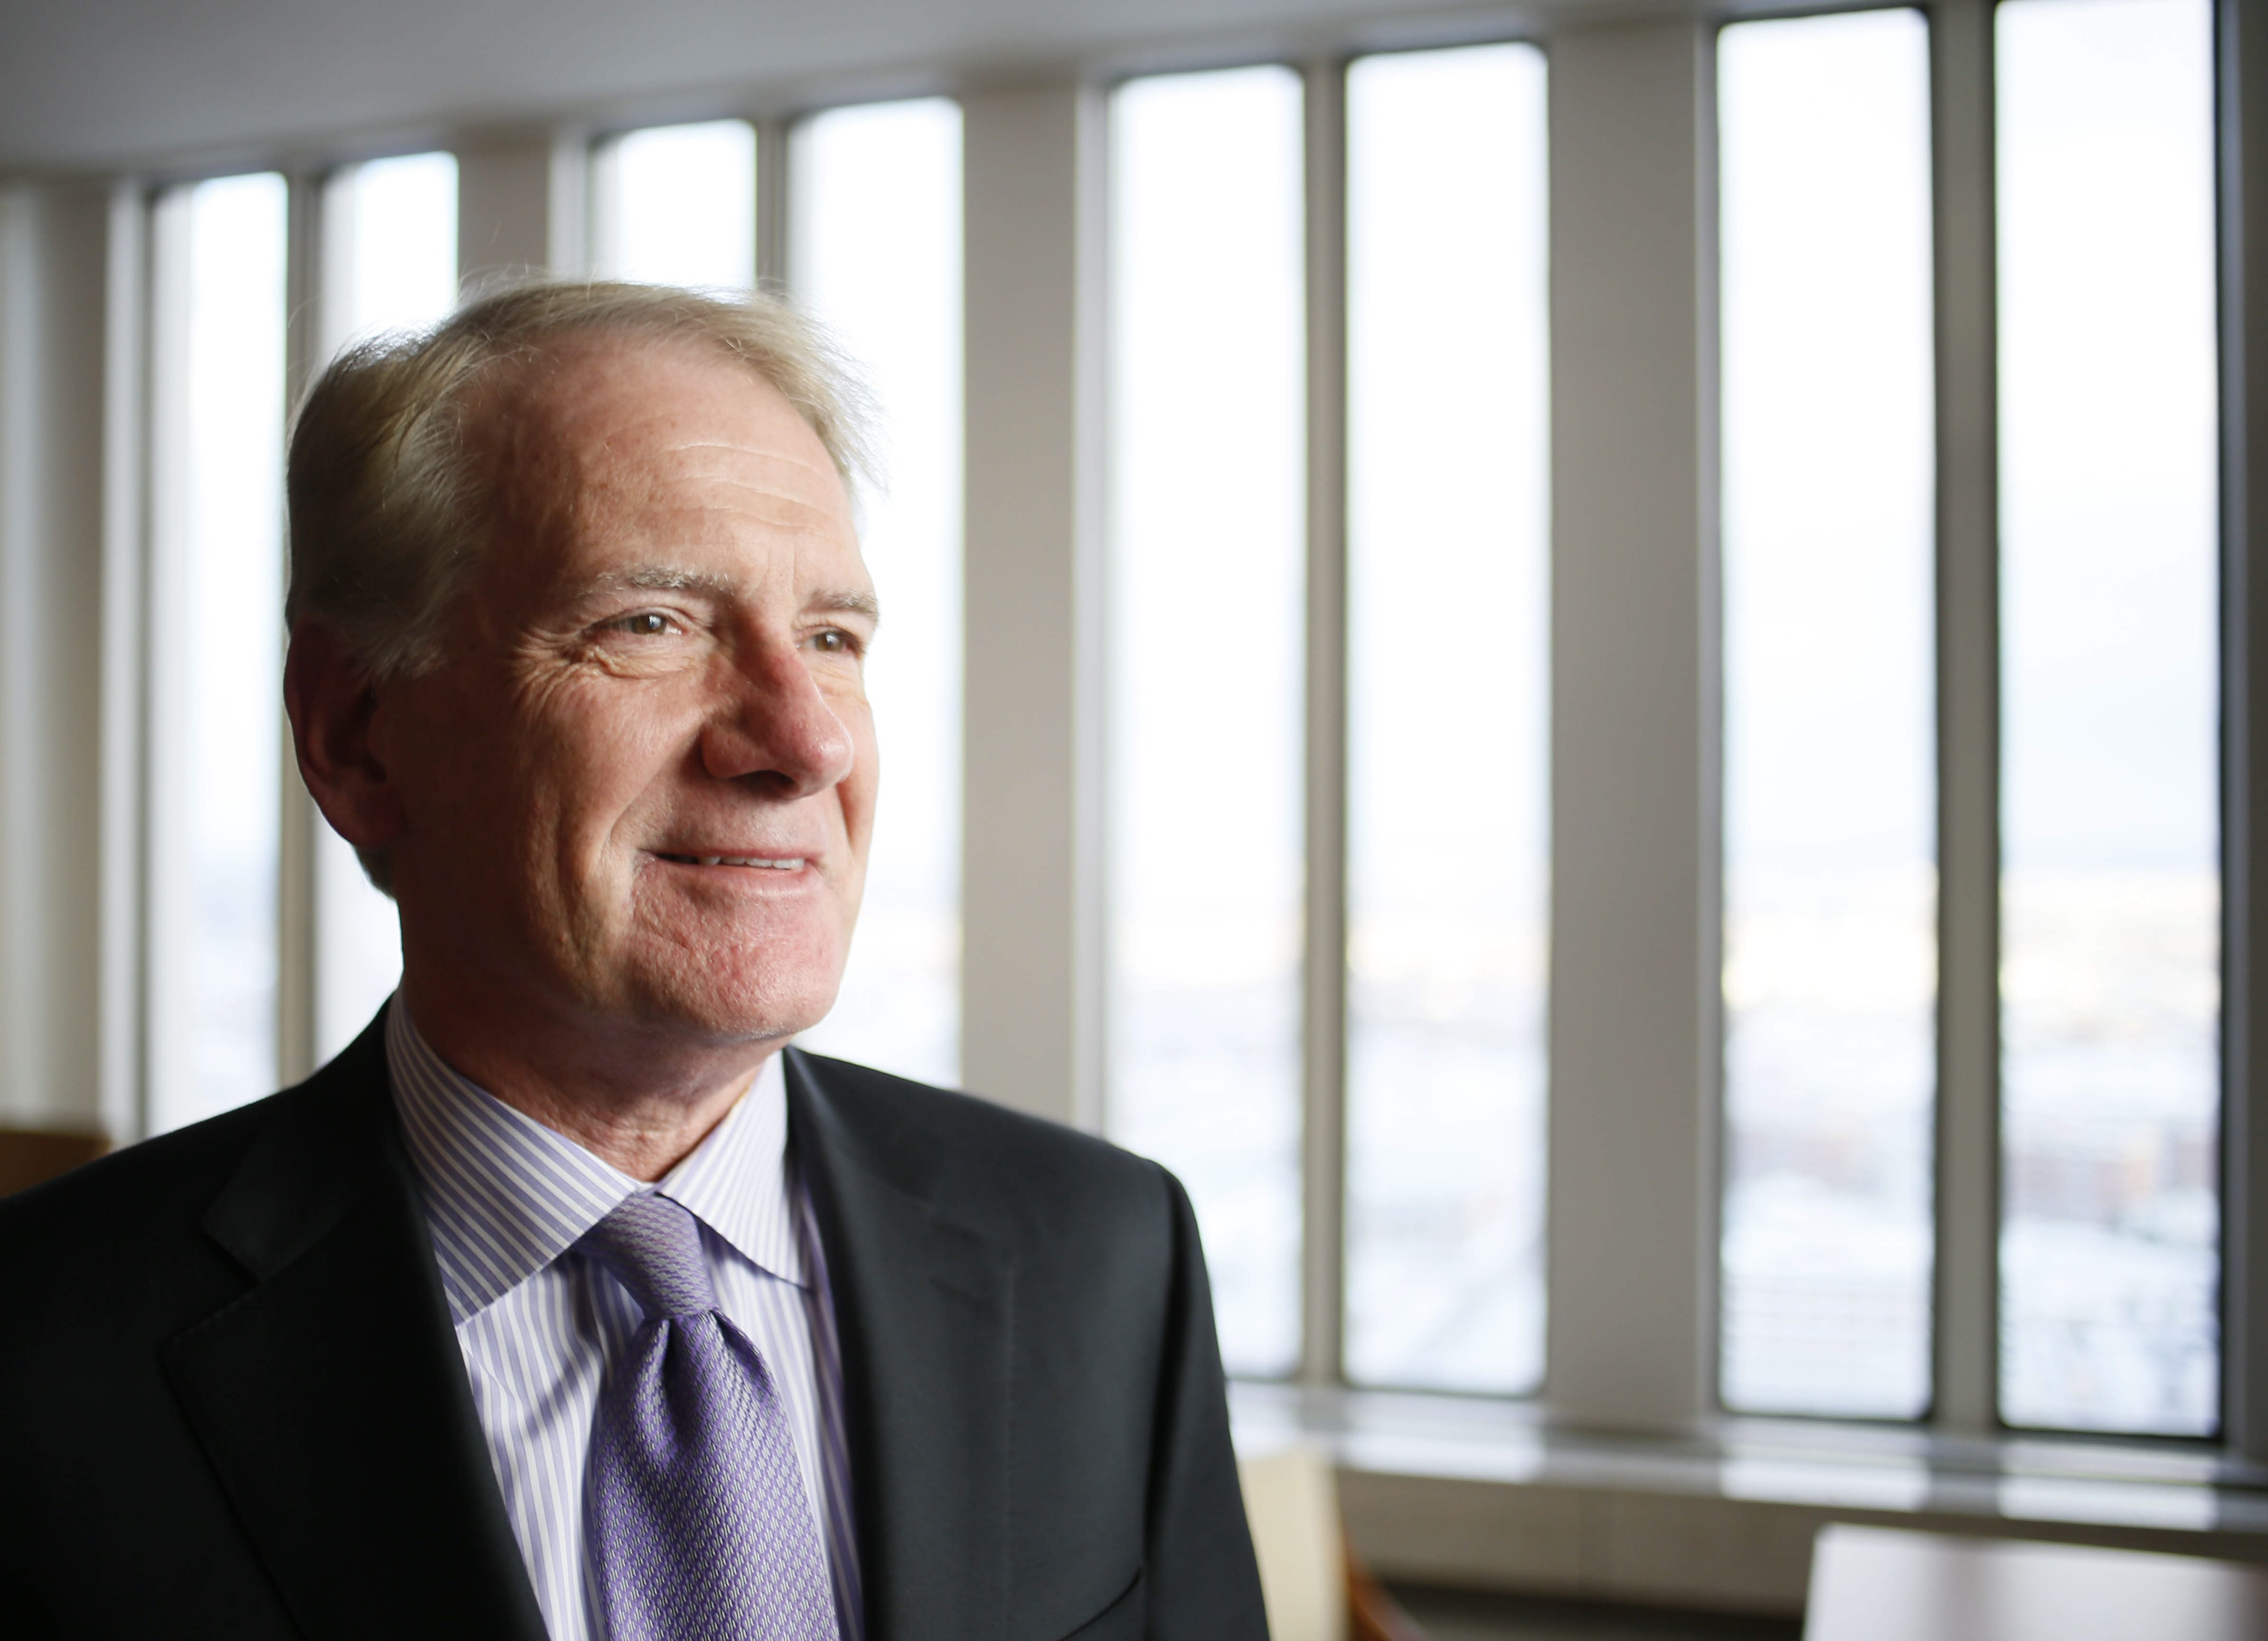 Mark J. Czarnecki, M&T Bank's president and chief operating officer, had overall responsibility for the Buffalo-based bank's day-to-day management. He died Sunday at 61. (Derek Gee/Buffalo News file photo)